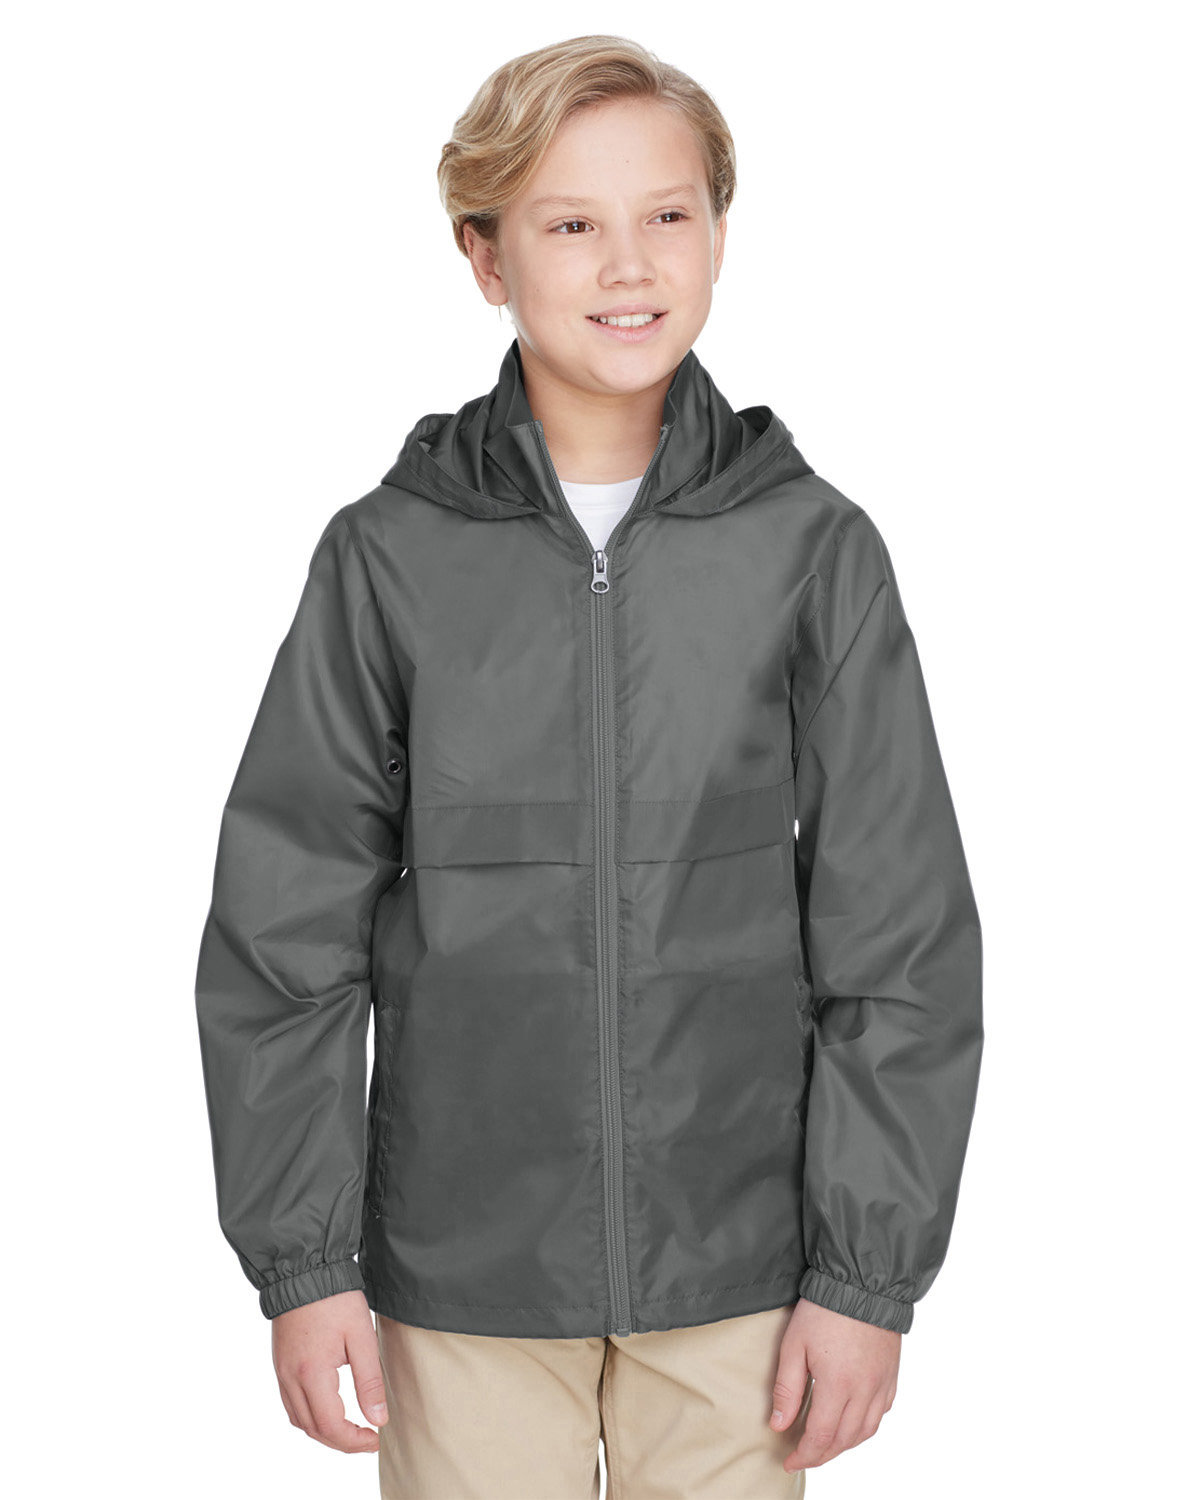 Team 365 Youth Zone Protect Lightweight Jacket SPORT GRAPHITE